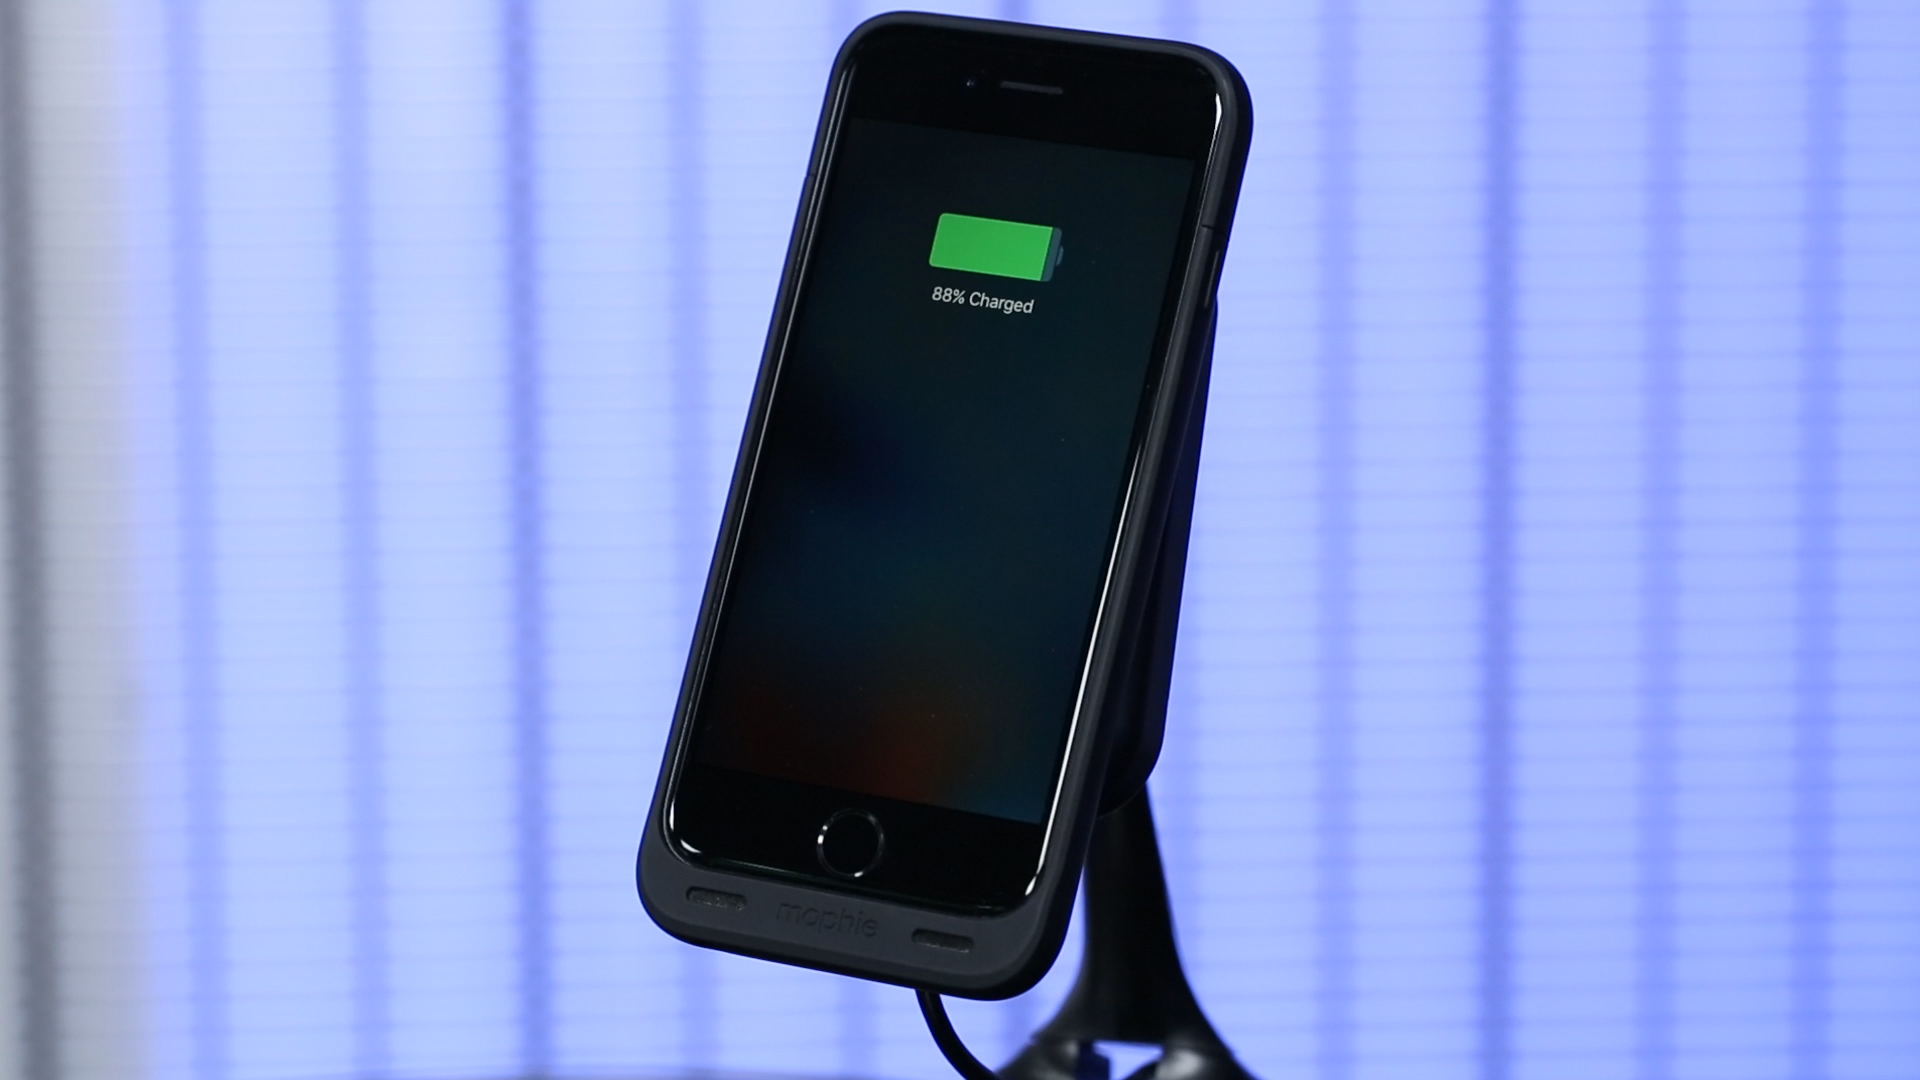 Video: Mophie Juice Pack Wireless adds wireless charging to iPhone 6/6S and 6 Plus/6S Plus